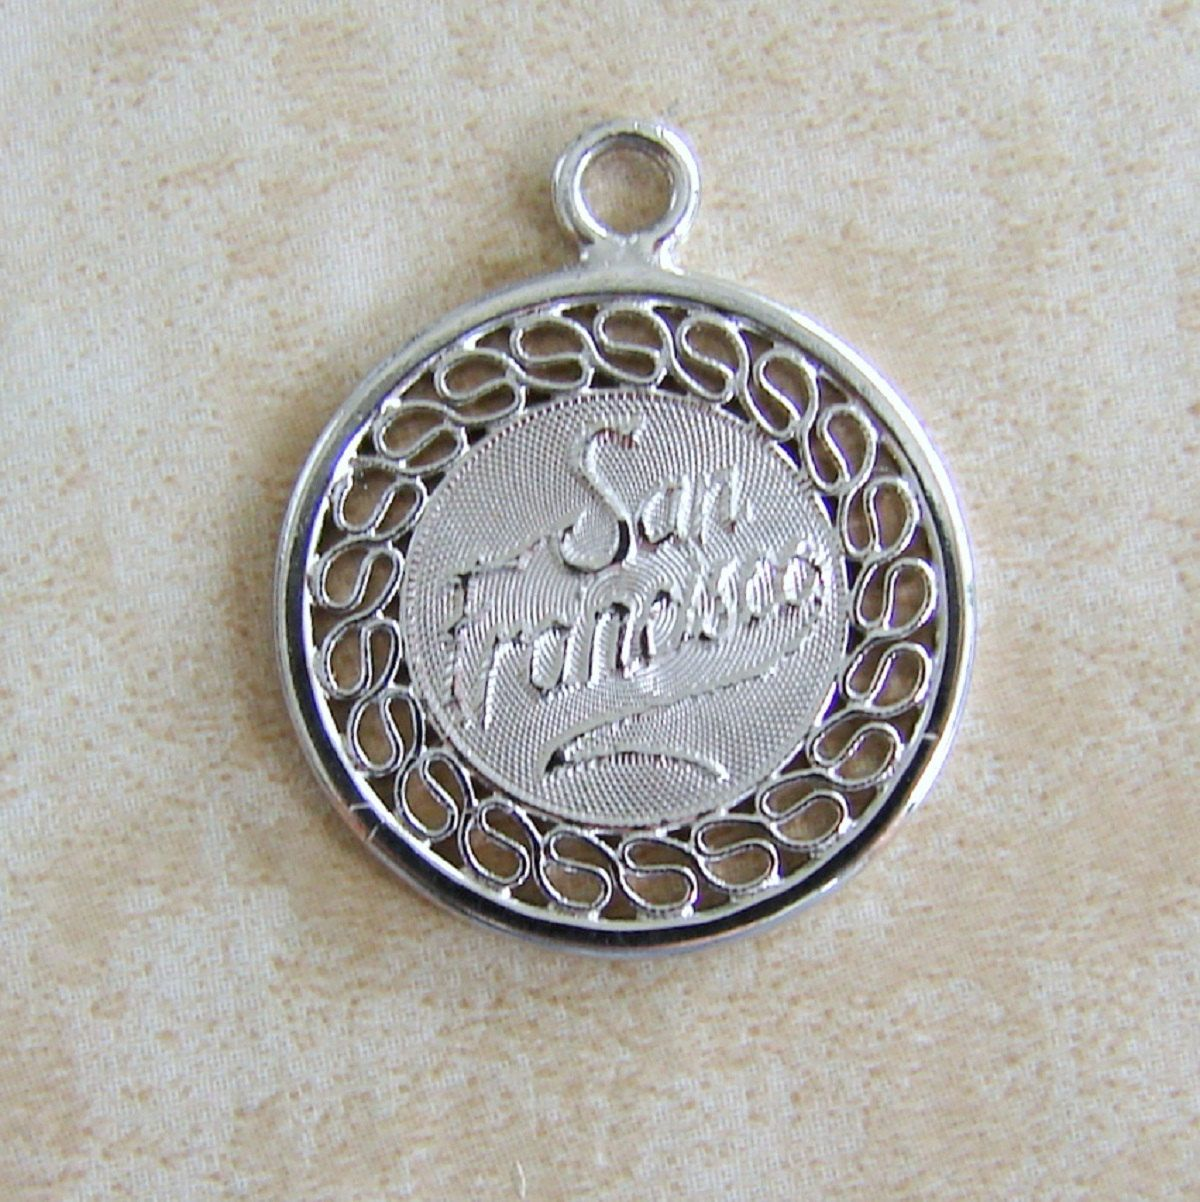 San Francisco California Crea Vintage Sterling Silver Bracelet Charm by Charmcrazey on Etsy https://www.etsy.com/listing/227468208/san-francisco-california-crea-vintage